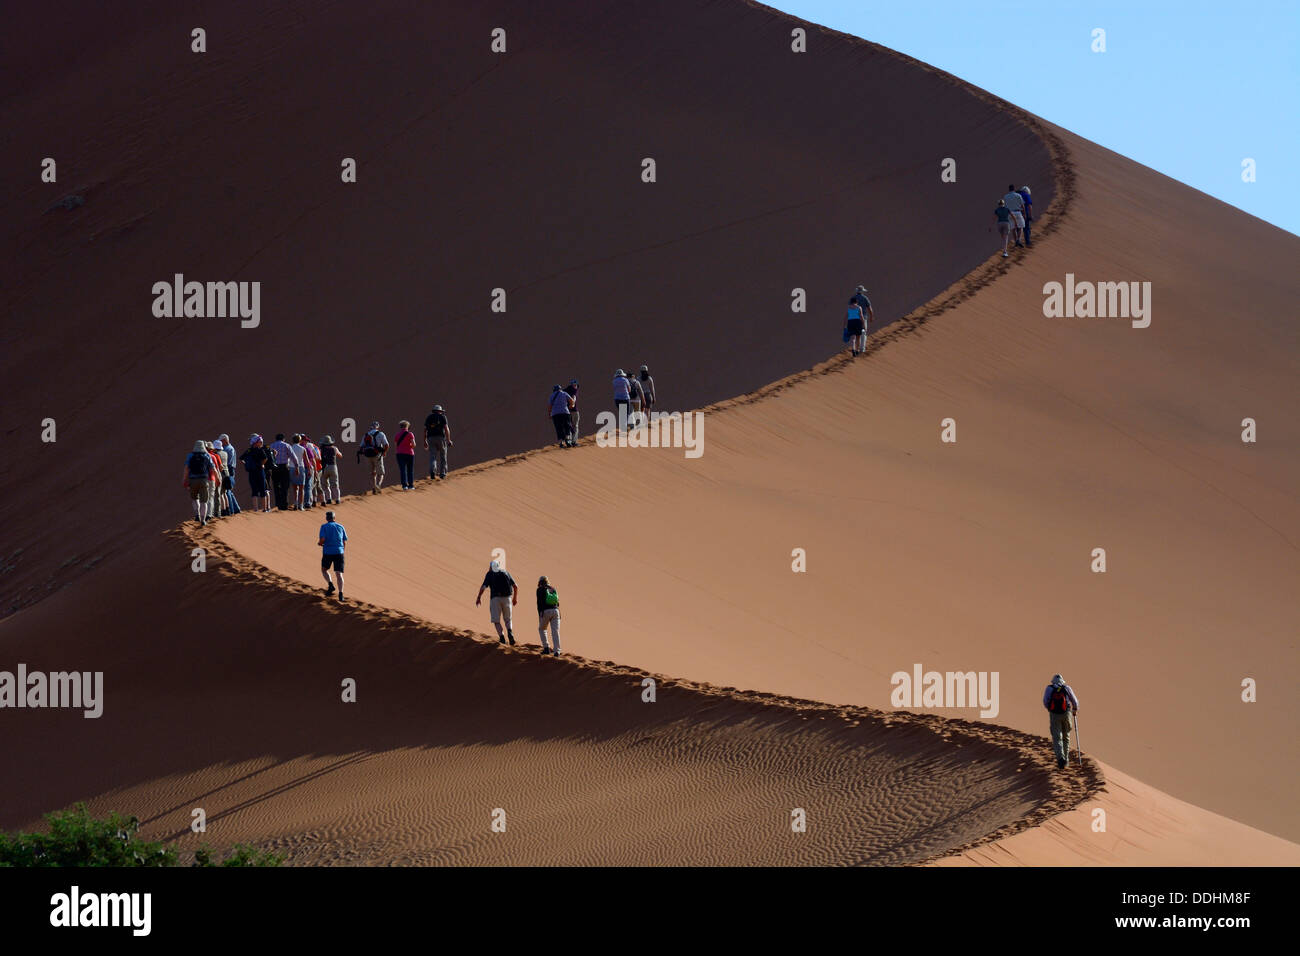 Tourists during the ascent of the 'Big Daddy' or 'Crazy Dune' sand dune - Stock Image